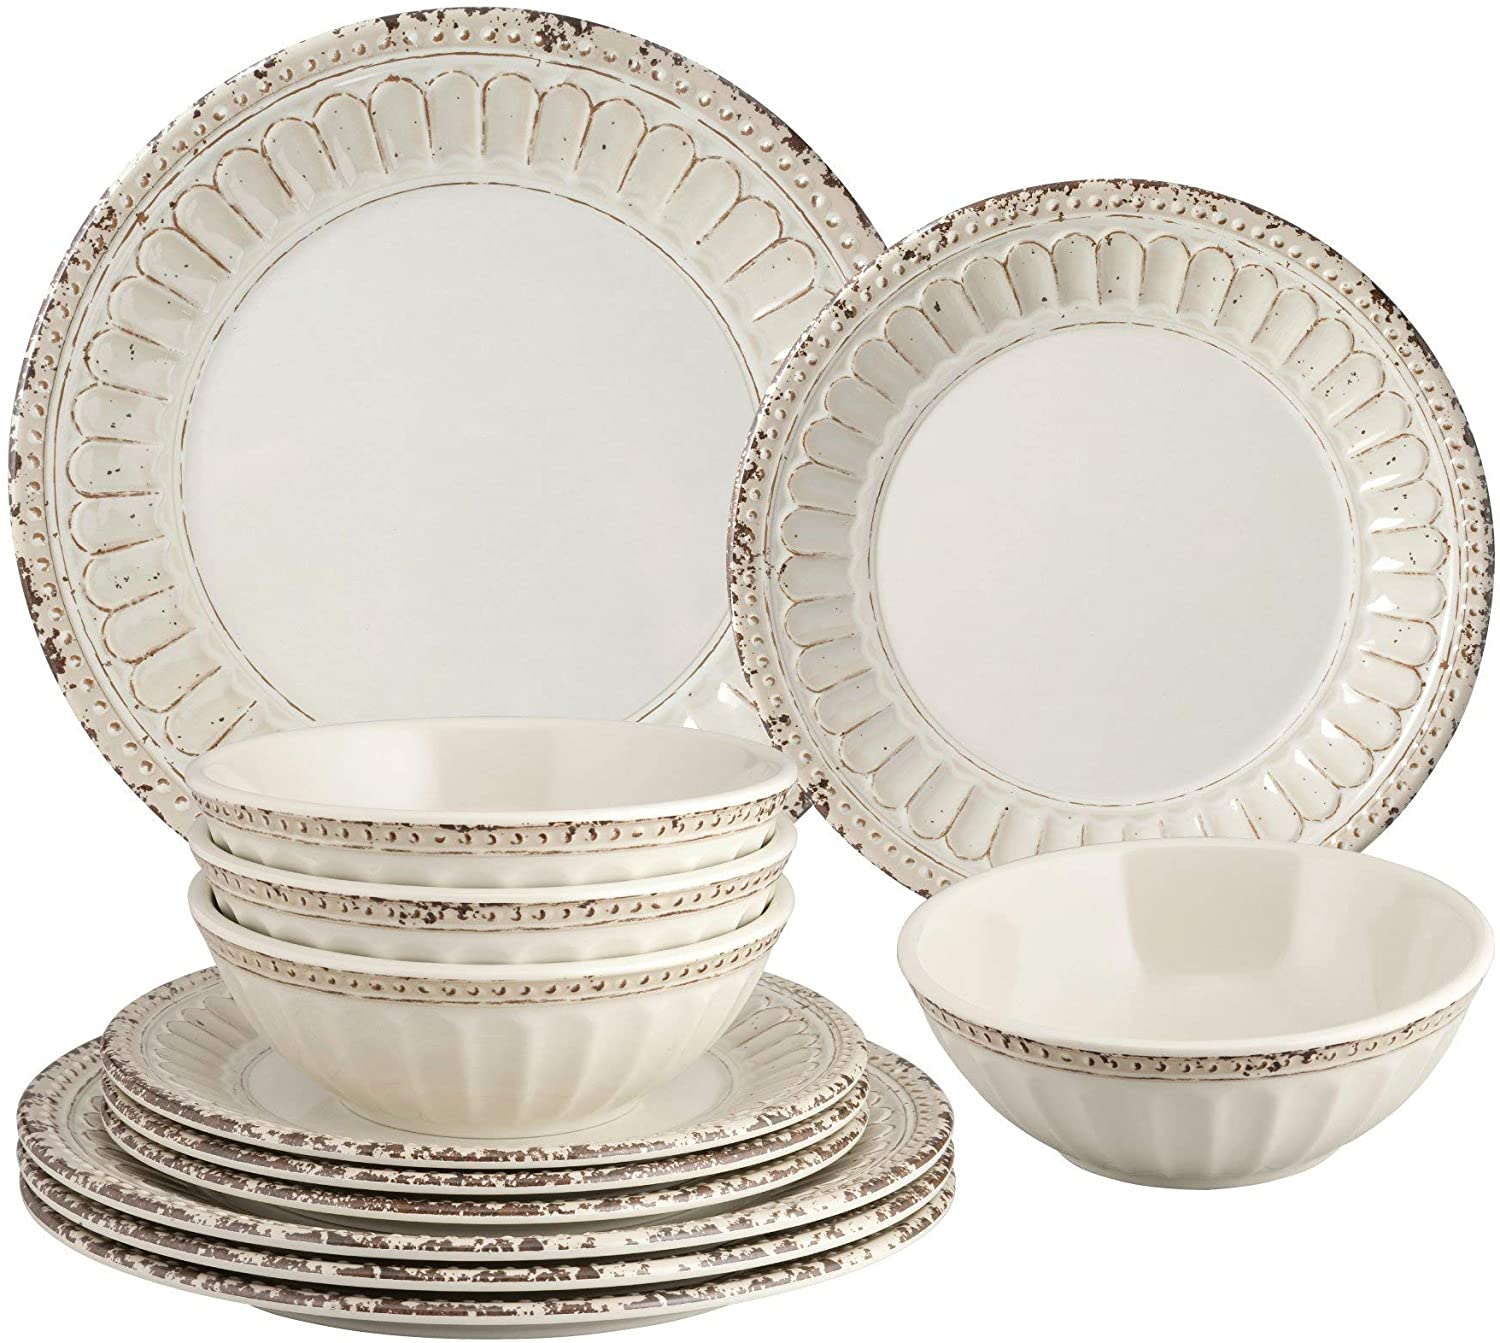 Gourmet Art 12-Piece Beaded Chateau Heavyweight and Durable Melamine Dinnerware Set, Sand, Service for 4. Includes Dinner Plates, Salad Plates, Bowls. for Indoors Outdoors Use and Everyday Use.